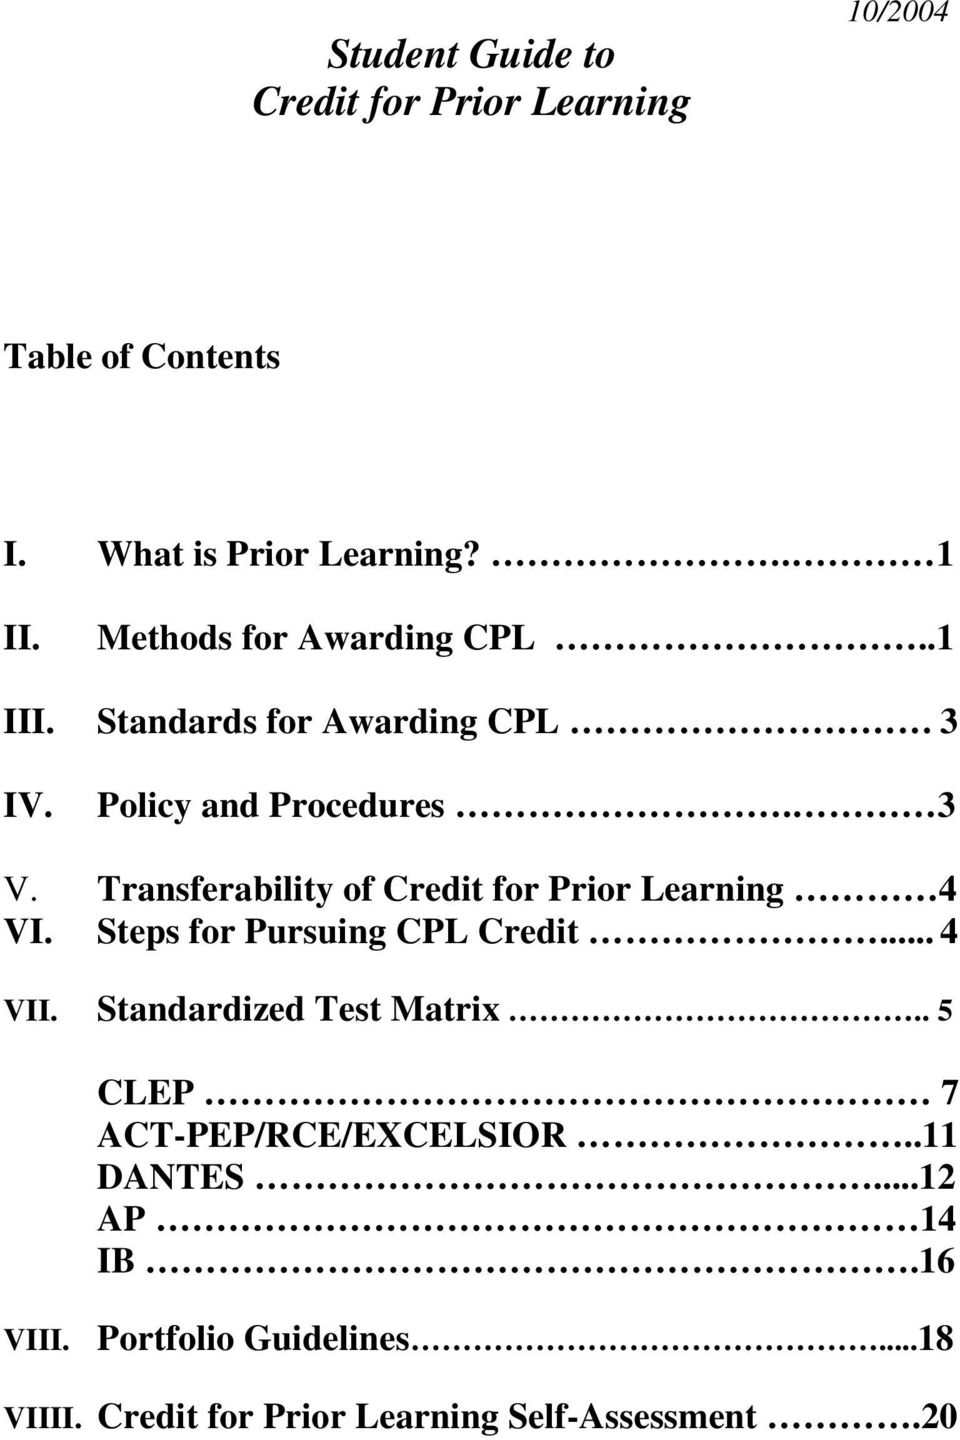 Transferability of Credit for Prior Learning VI. Steps for Pursuing CPL Credit... VII. Standardized Test Matrix.